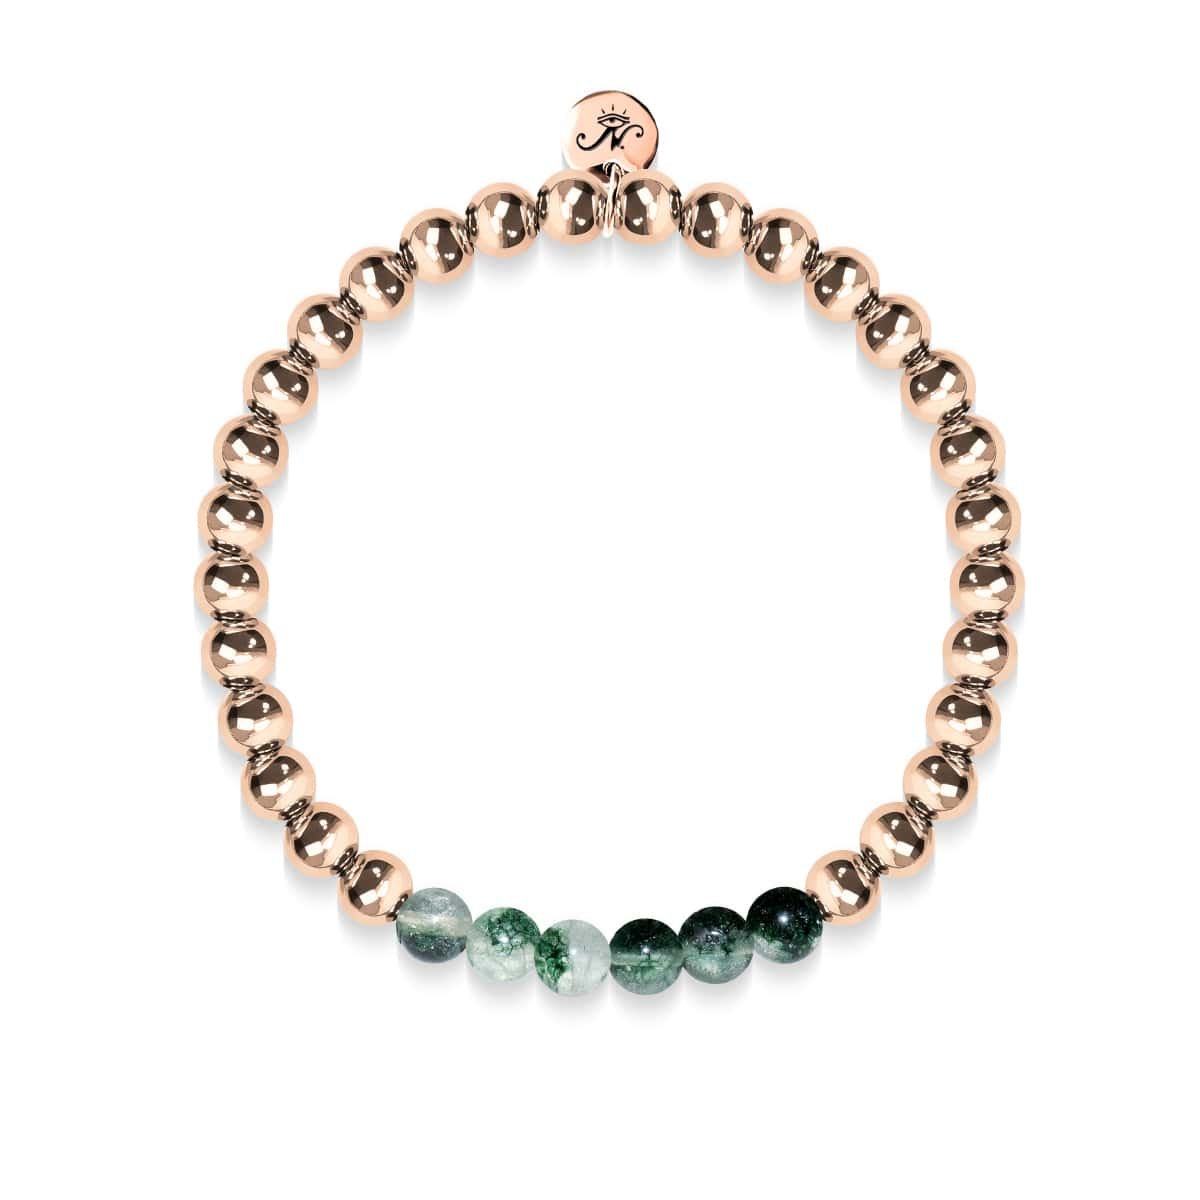 Grateful | 18k Rose Gold | Green Leaf Agate | Gemstone Expression Bracelet